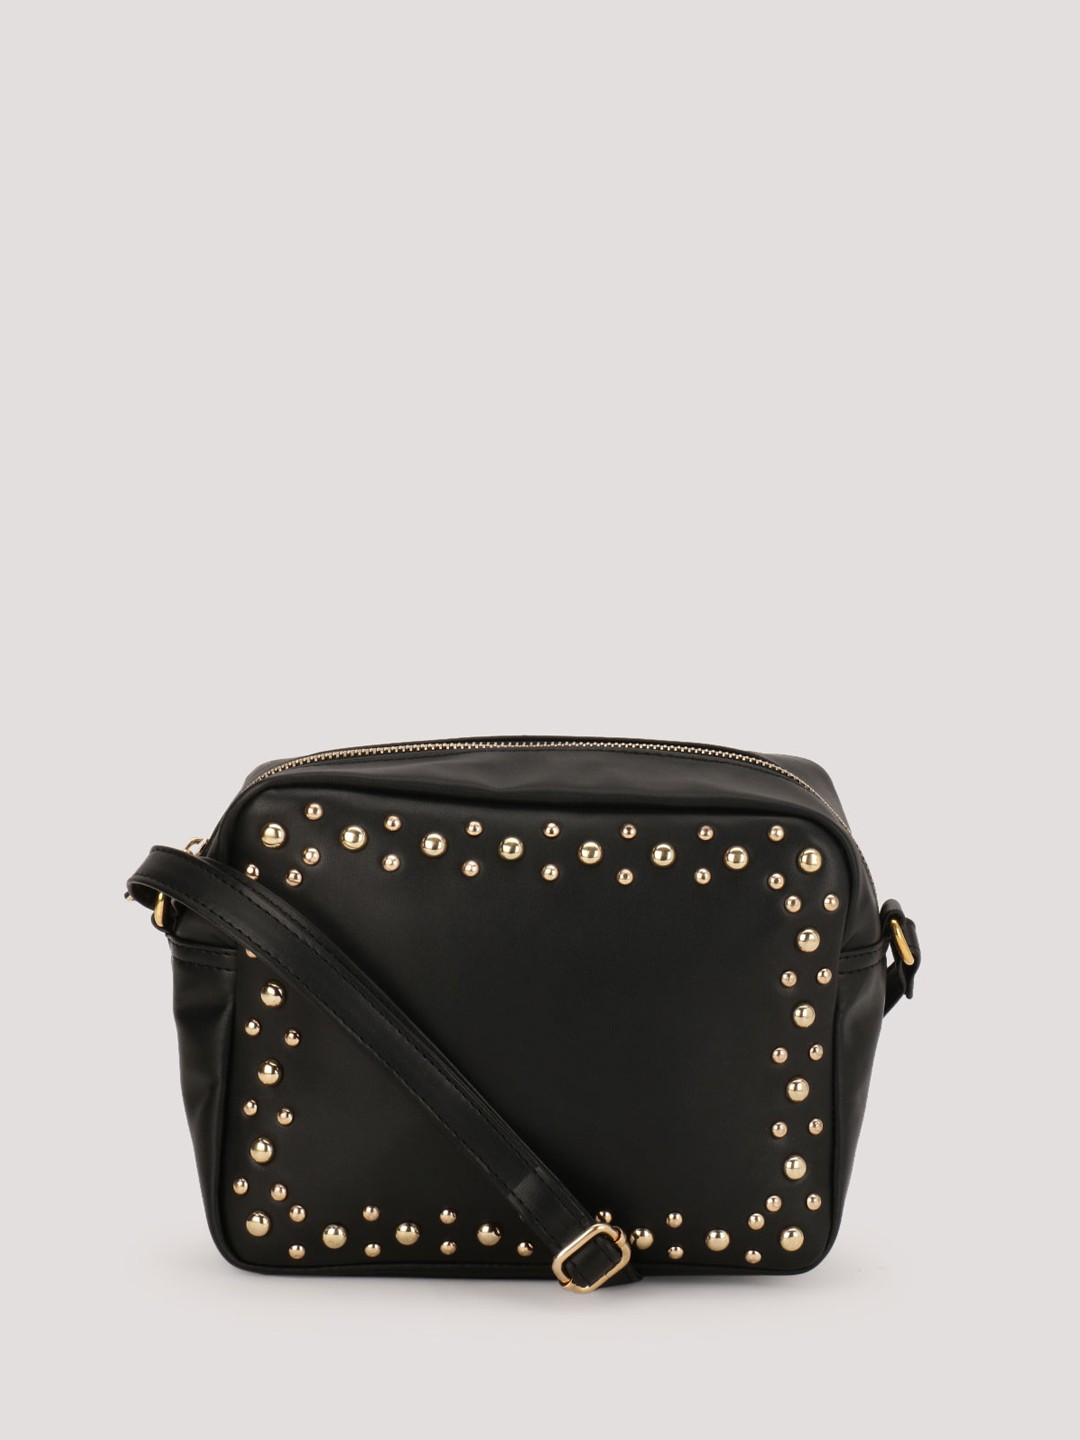 Buy PARIS BELLE Studded Sling Bag For Women - Women's Black Sling ...